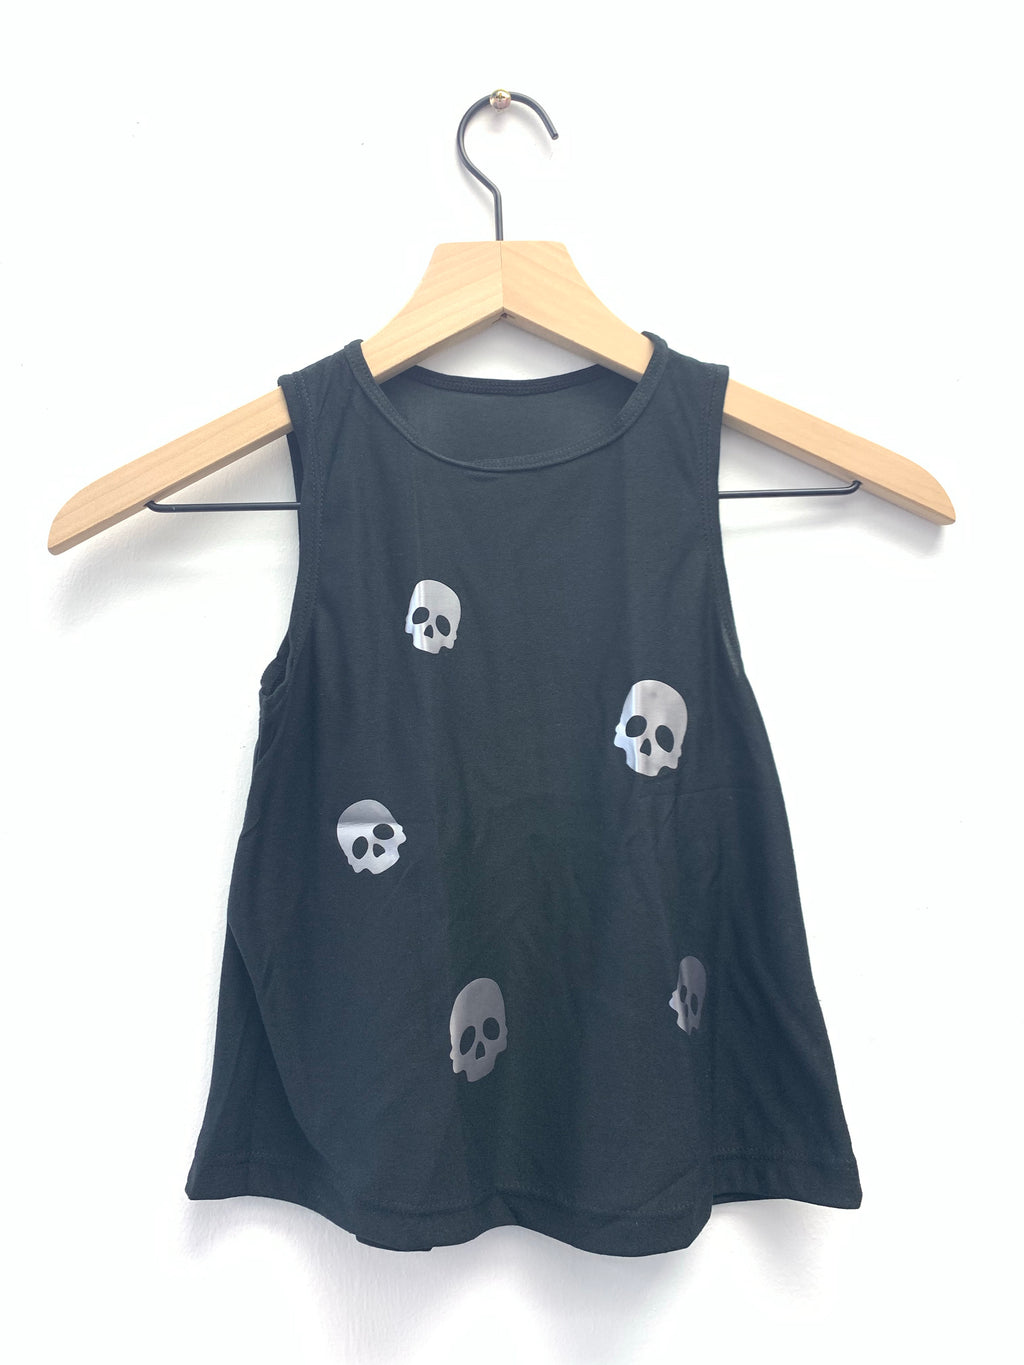 Skulls Silver Black Tank - Fanilu Activewear For Kids